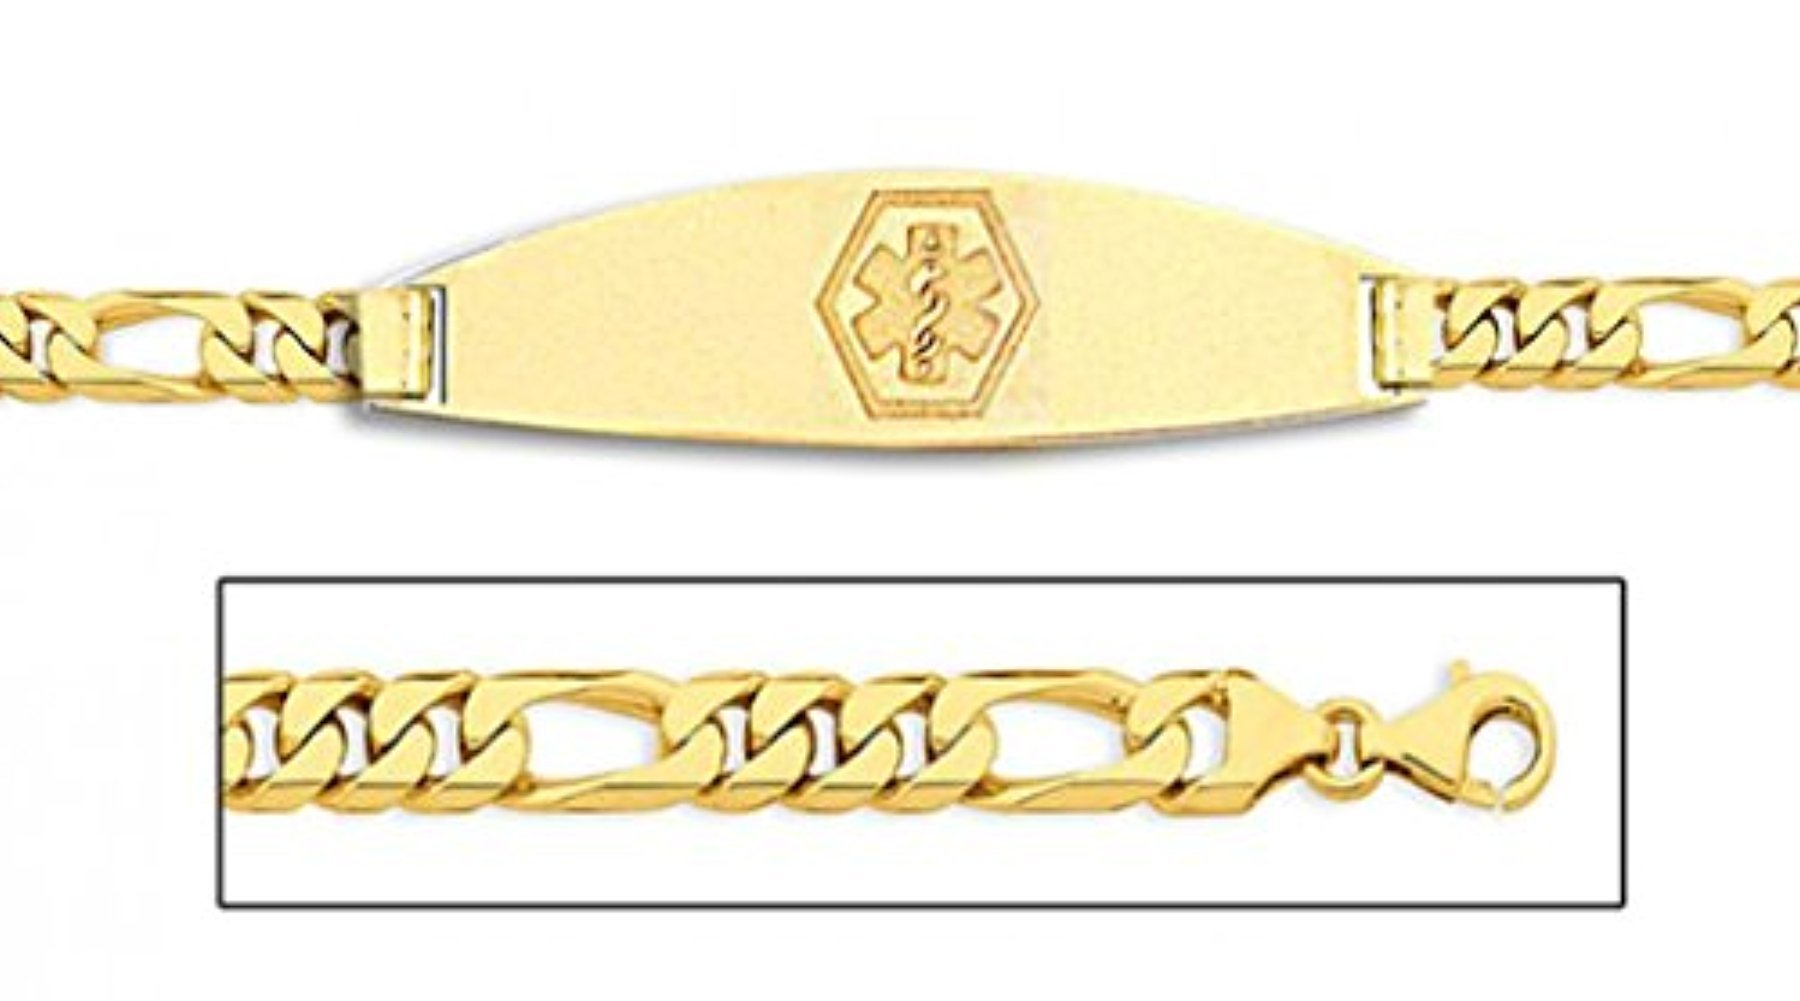 14K Gold Medical ID Bracelet W/Figaro Chain - 8 Inch WITH ENGRAVING